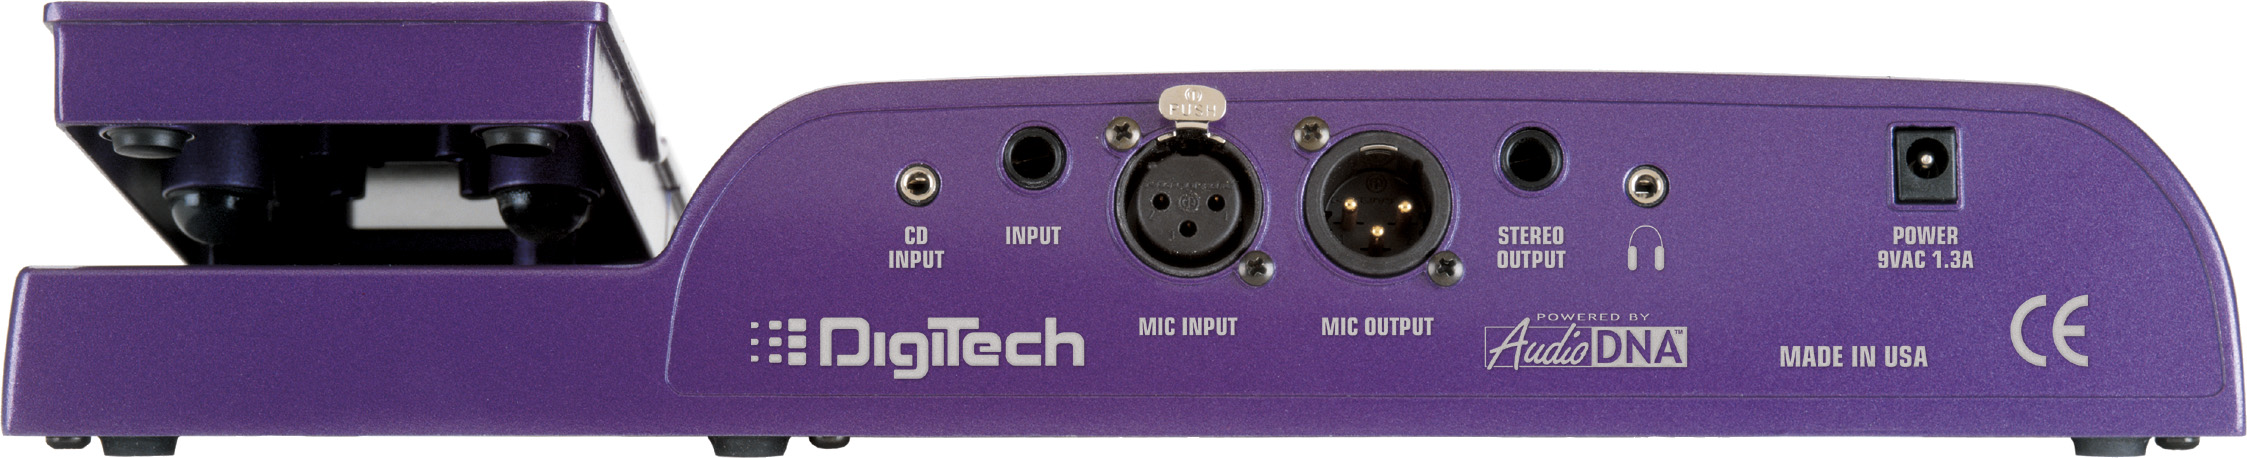 Vocal 300 (discontinued). Vocal Multi-Effects Processor